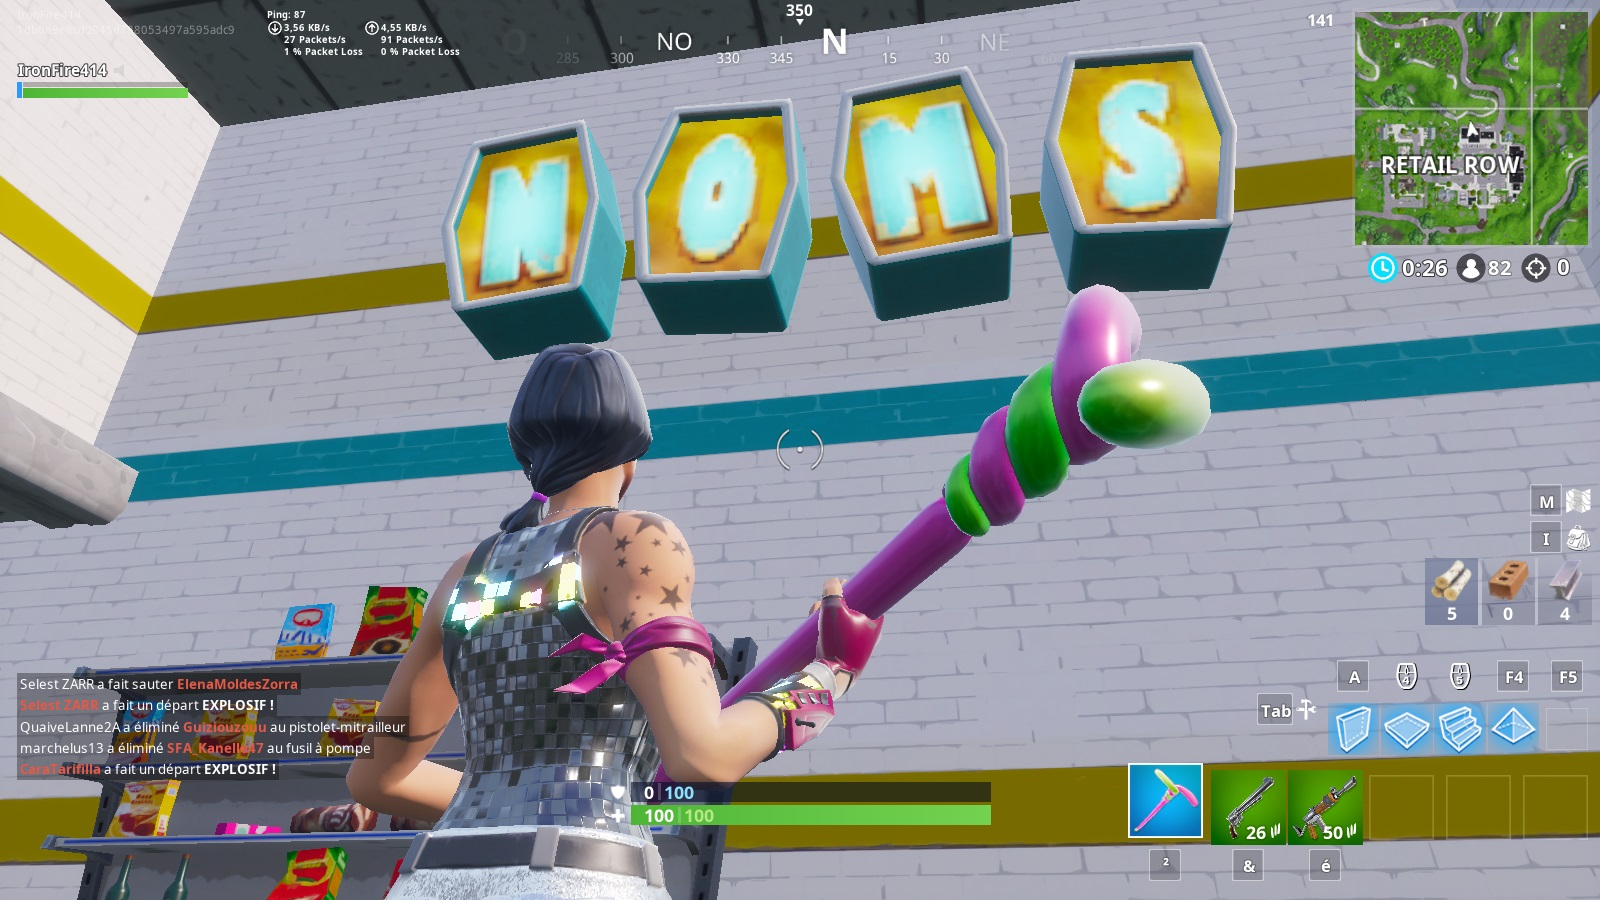 noms-fortnite-retail-row